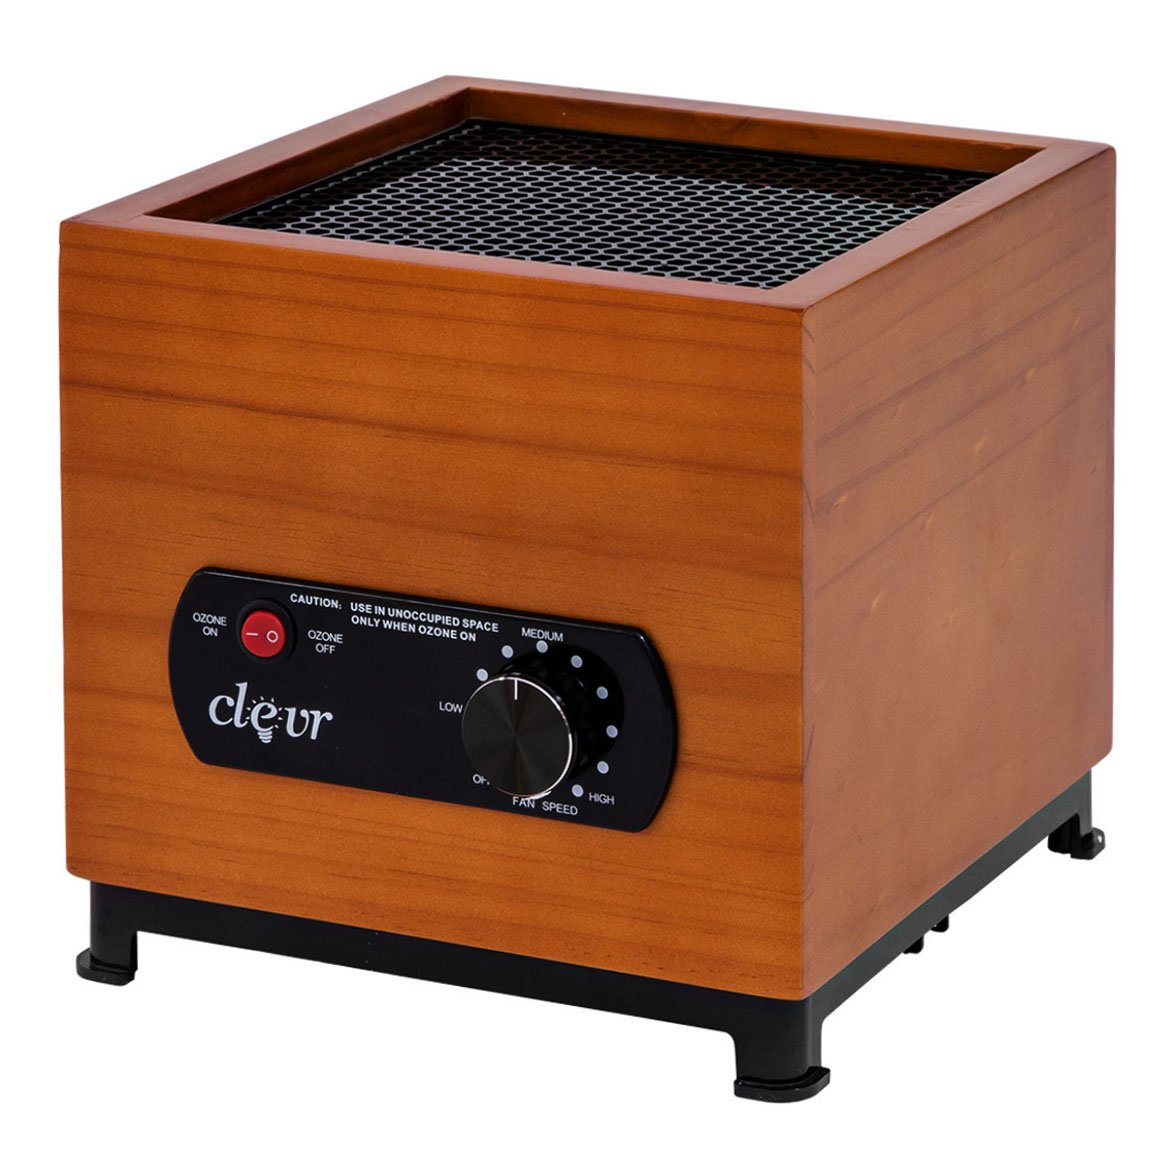 Clevr 8 Stage Ozone Generator Air Purifier, Bamboo Casing Design, Filter, Ozone, Ionic, UV, Plasma, Home Use, 1000 Square Feet Coverage | 1 YEAR LIMITED WARRANTY